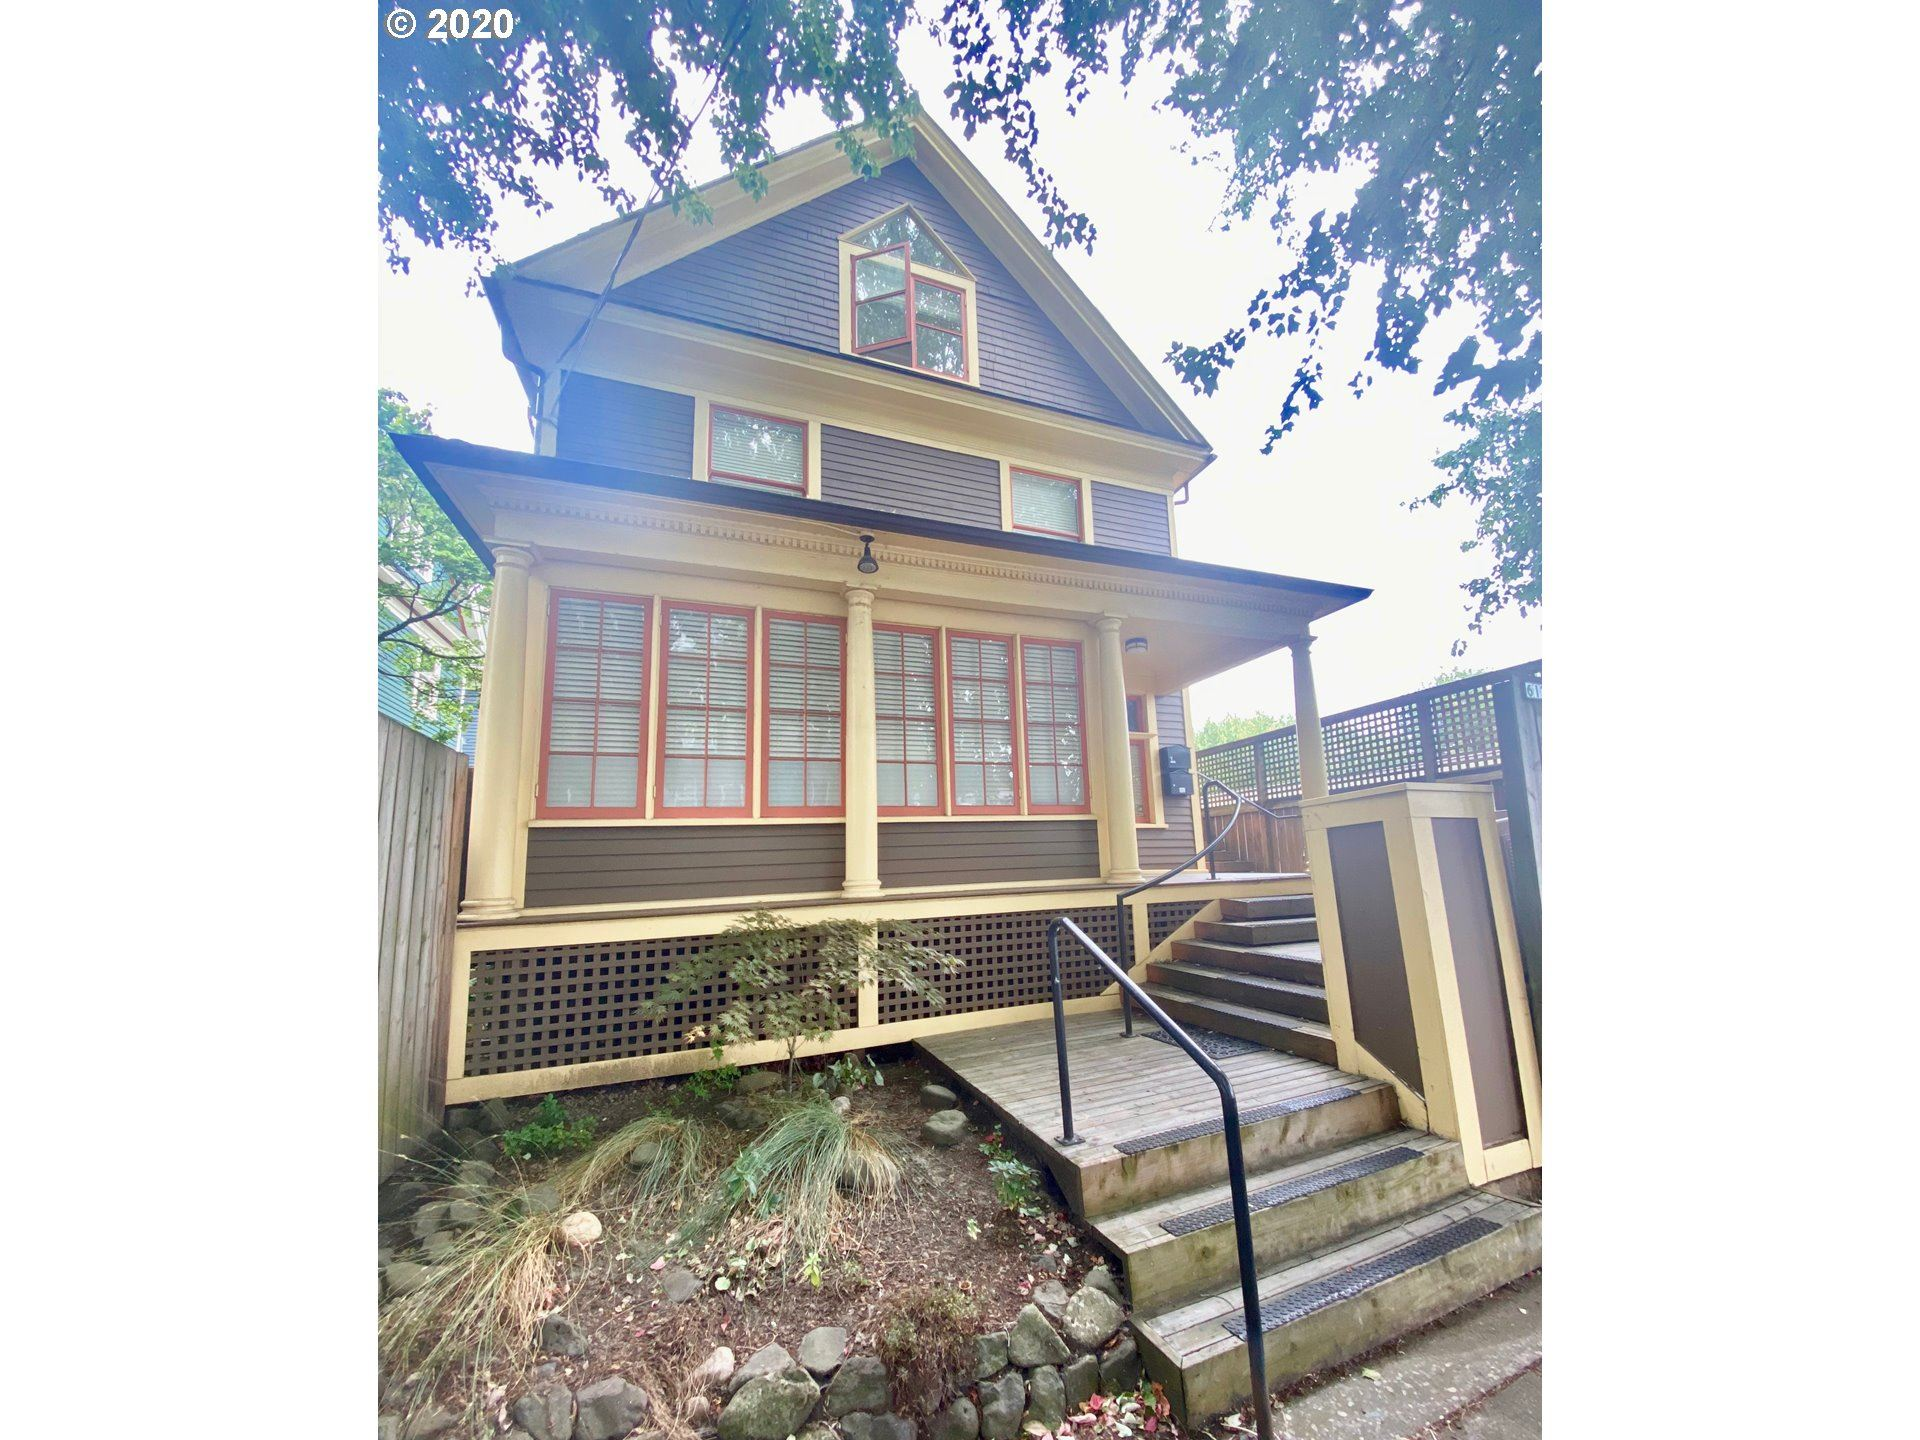 617 NW 17TH AVE, Portland, OR 97209 - MLS#: 20259761